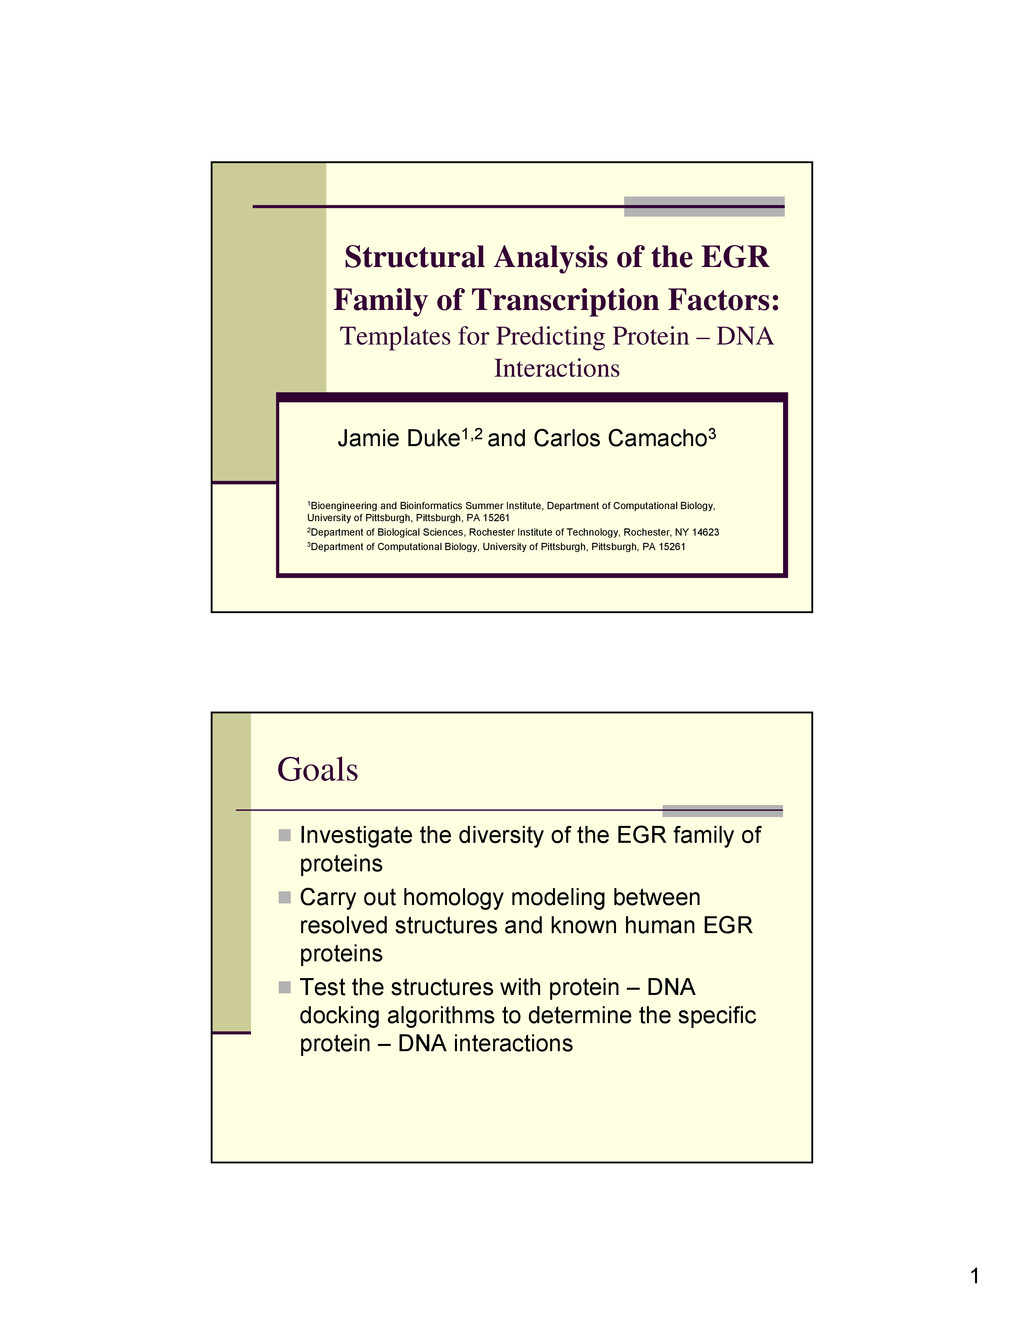 1 Structural Analysis of the EGR Family of Tran...